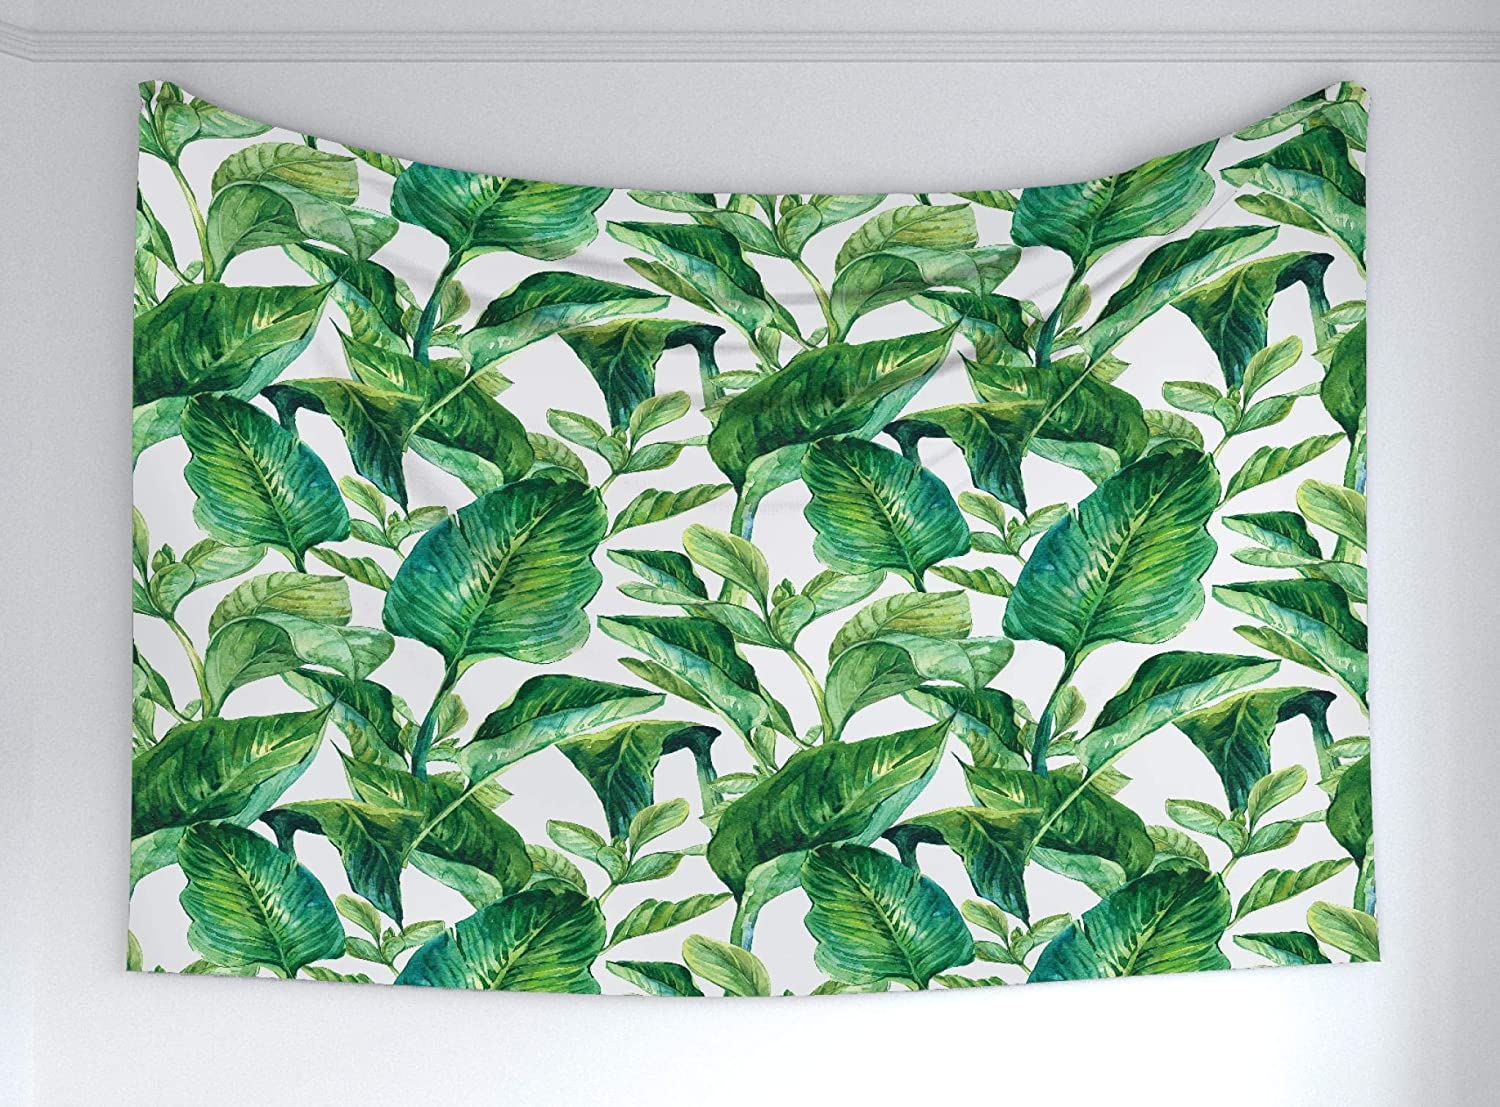 Ambesonne Leaf Tapestry, Romantic Holiday Island Hawaiian Banana Trees Watercolored Image, Fabric Wall Hanging Decor for Bedroom Living Room Dorm, 90